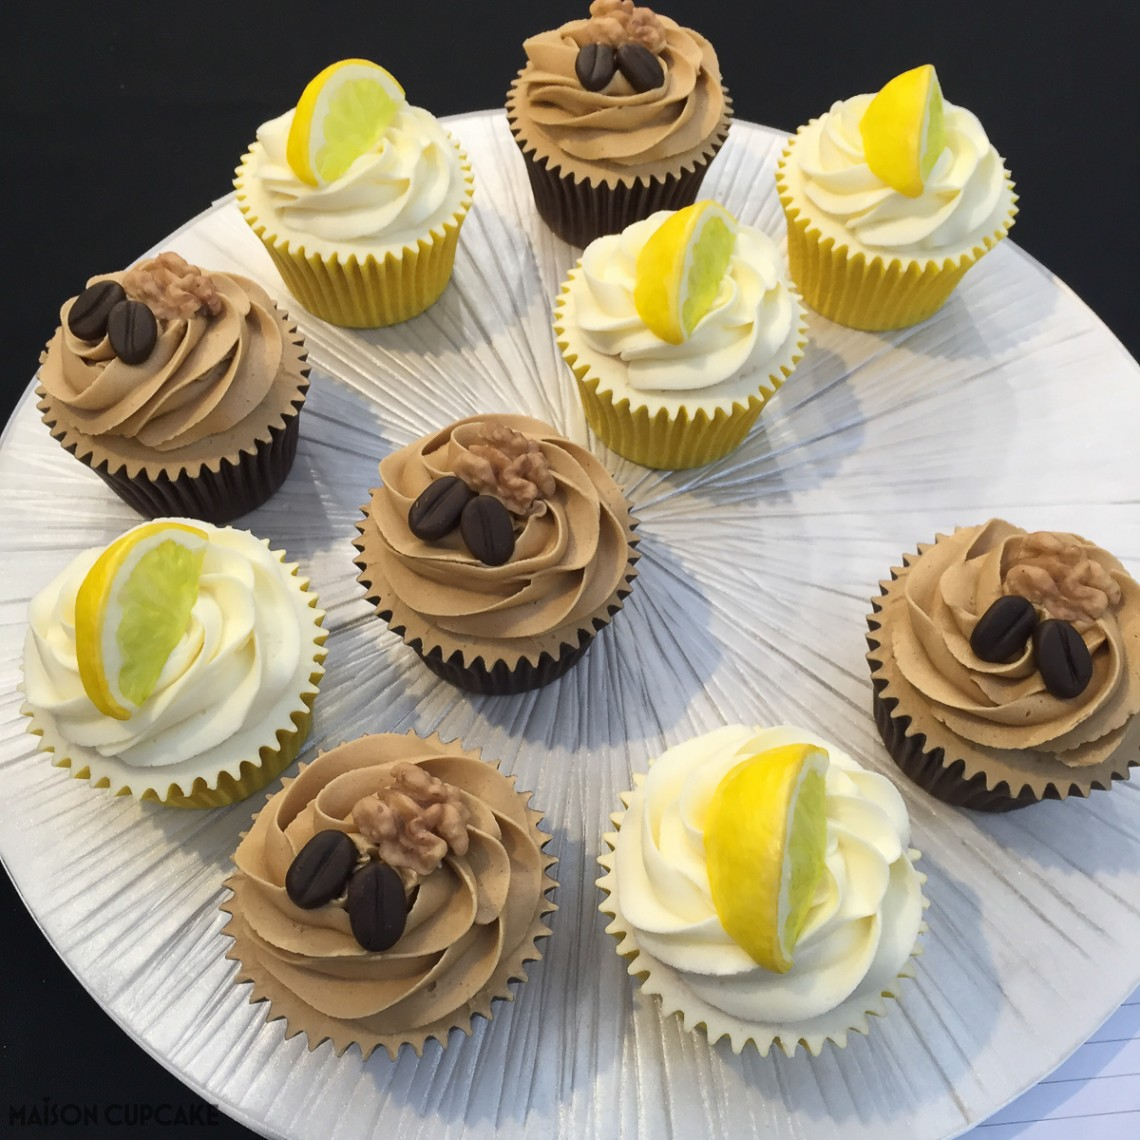 Coffee and lemon cupcakes by Sarah Sibley